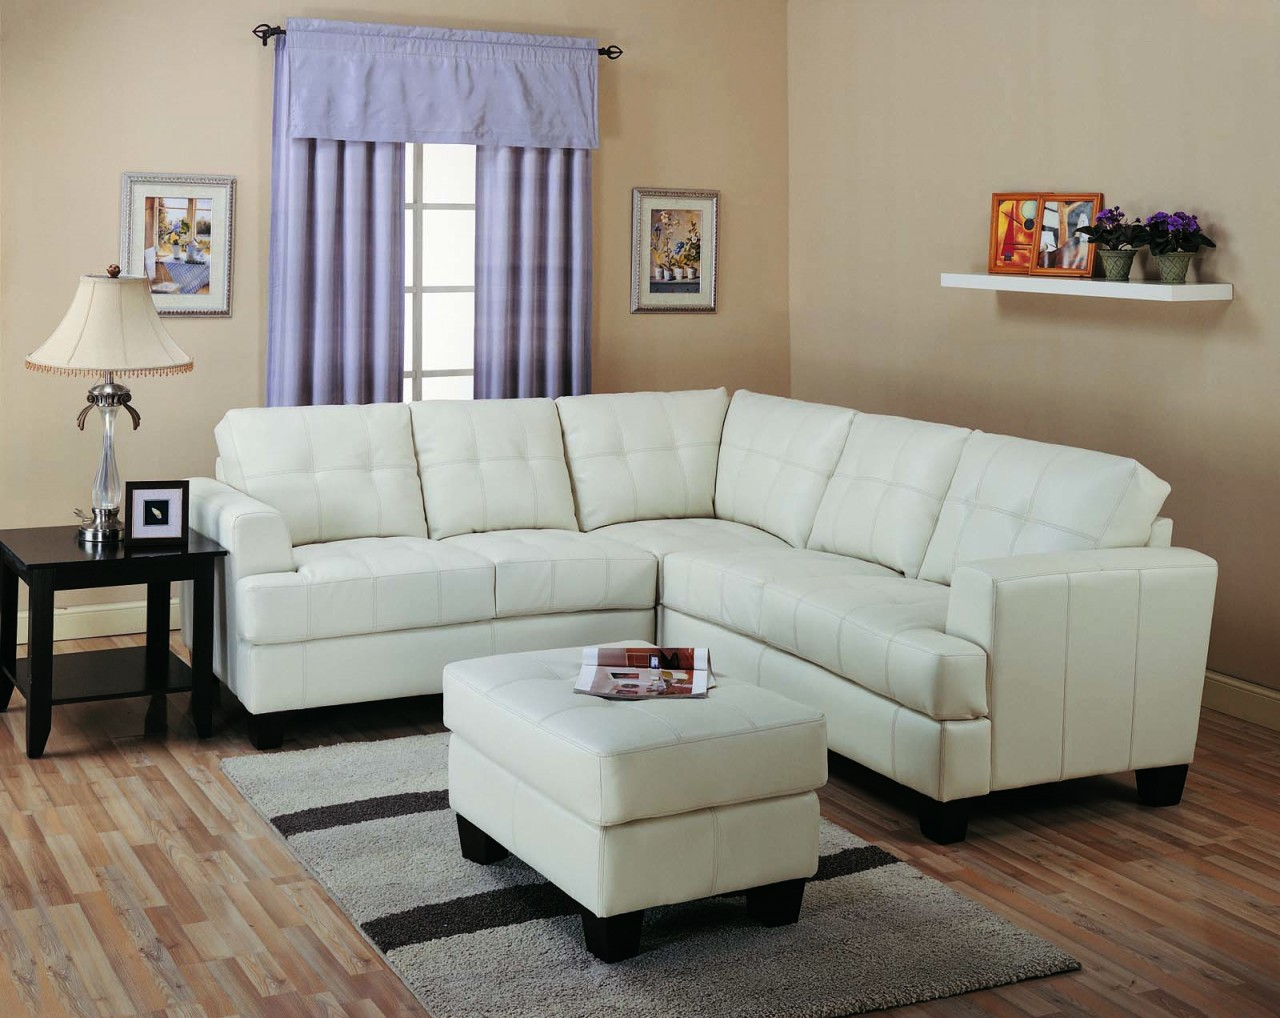 Types of best small sectional couches for small living for Sectional couch in small room